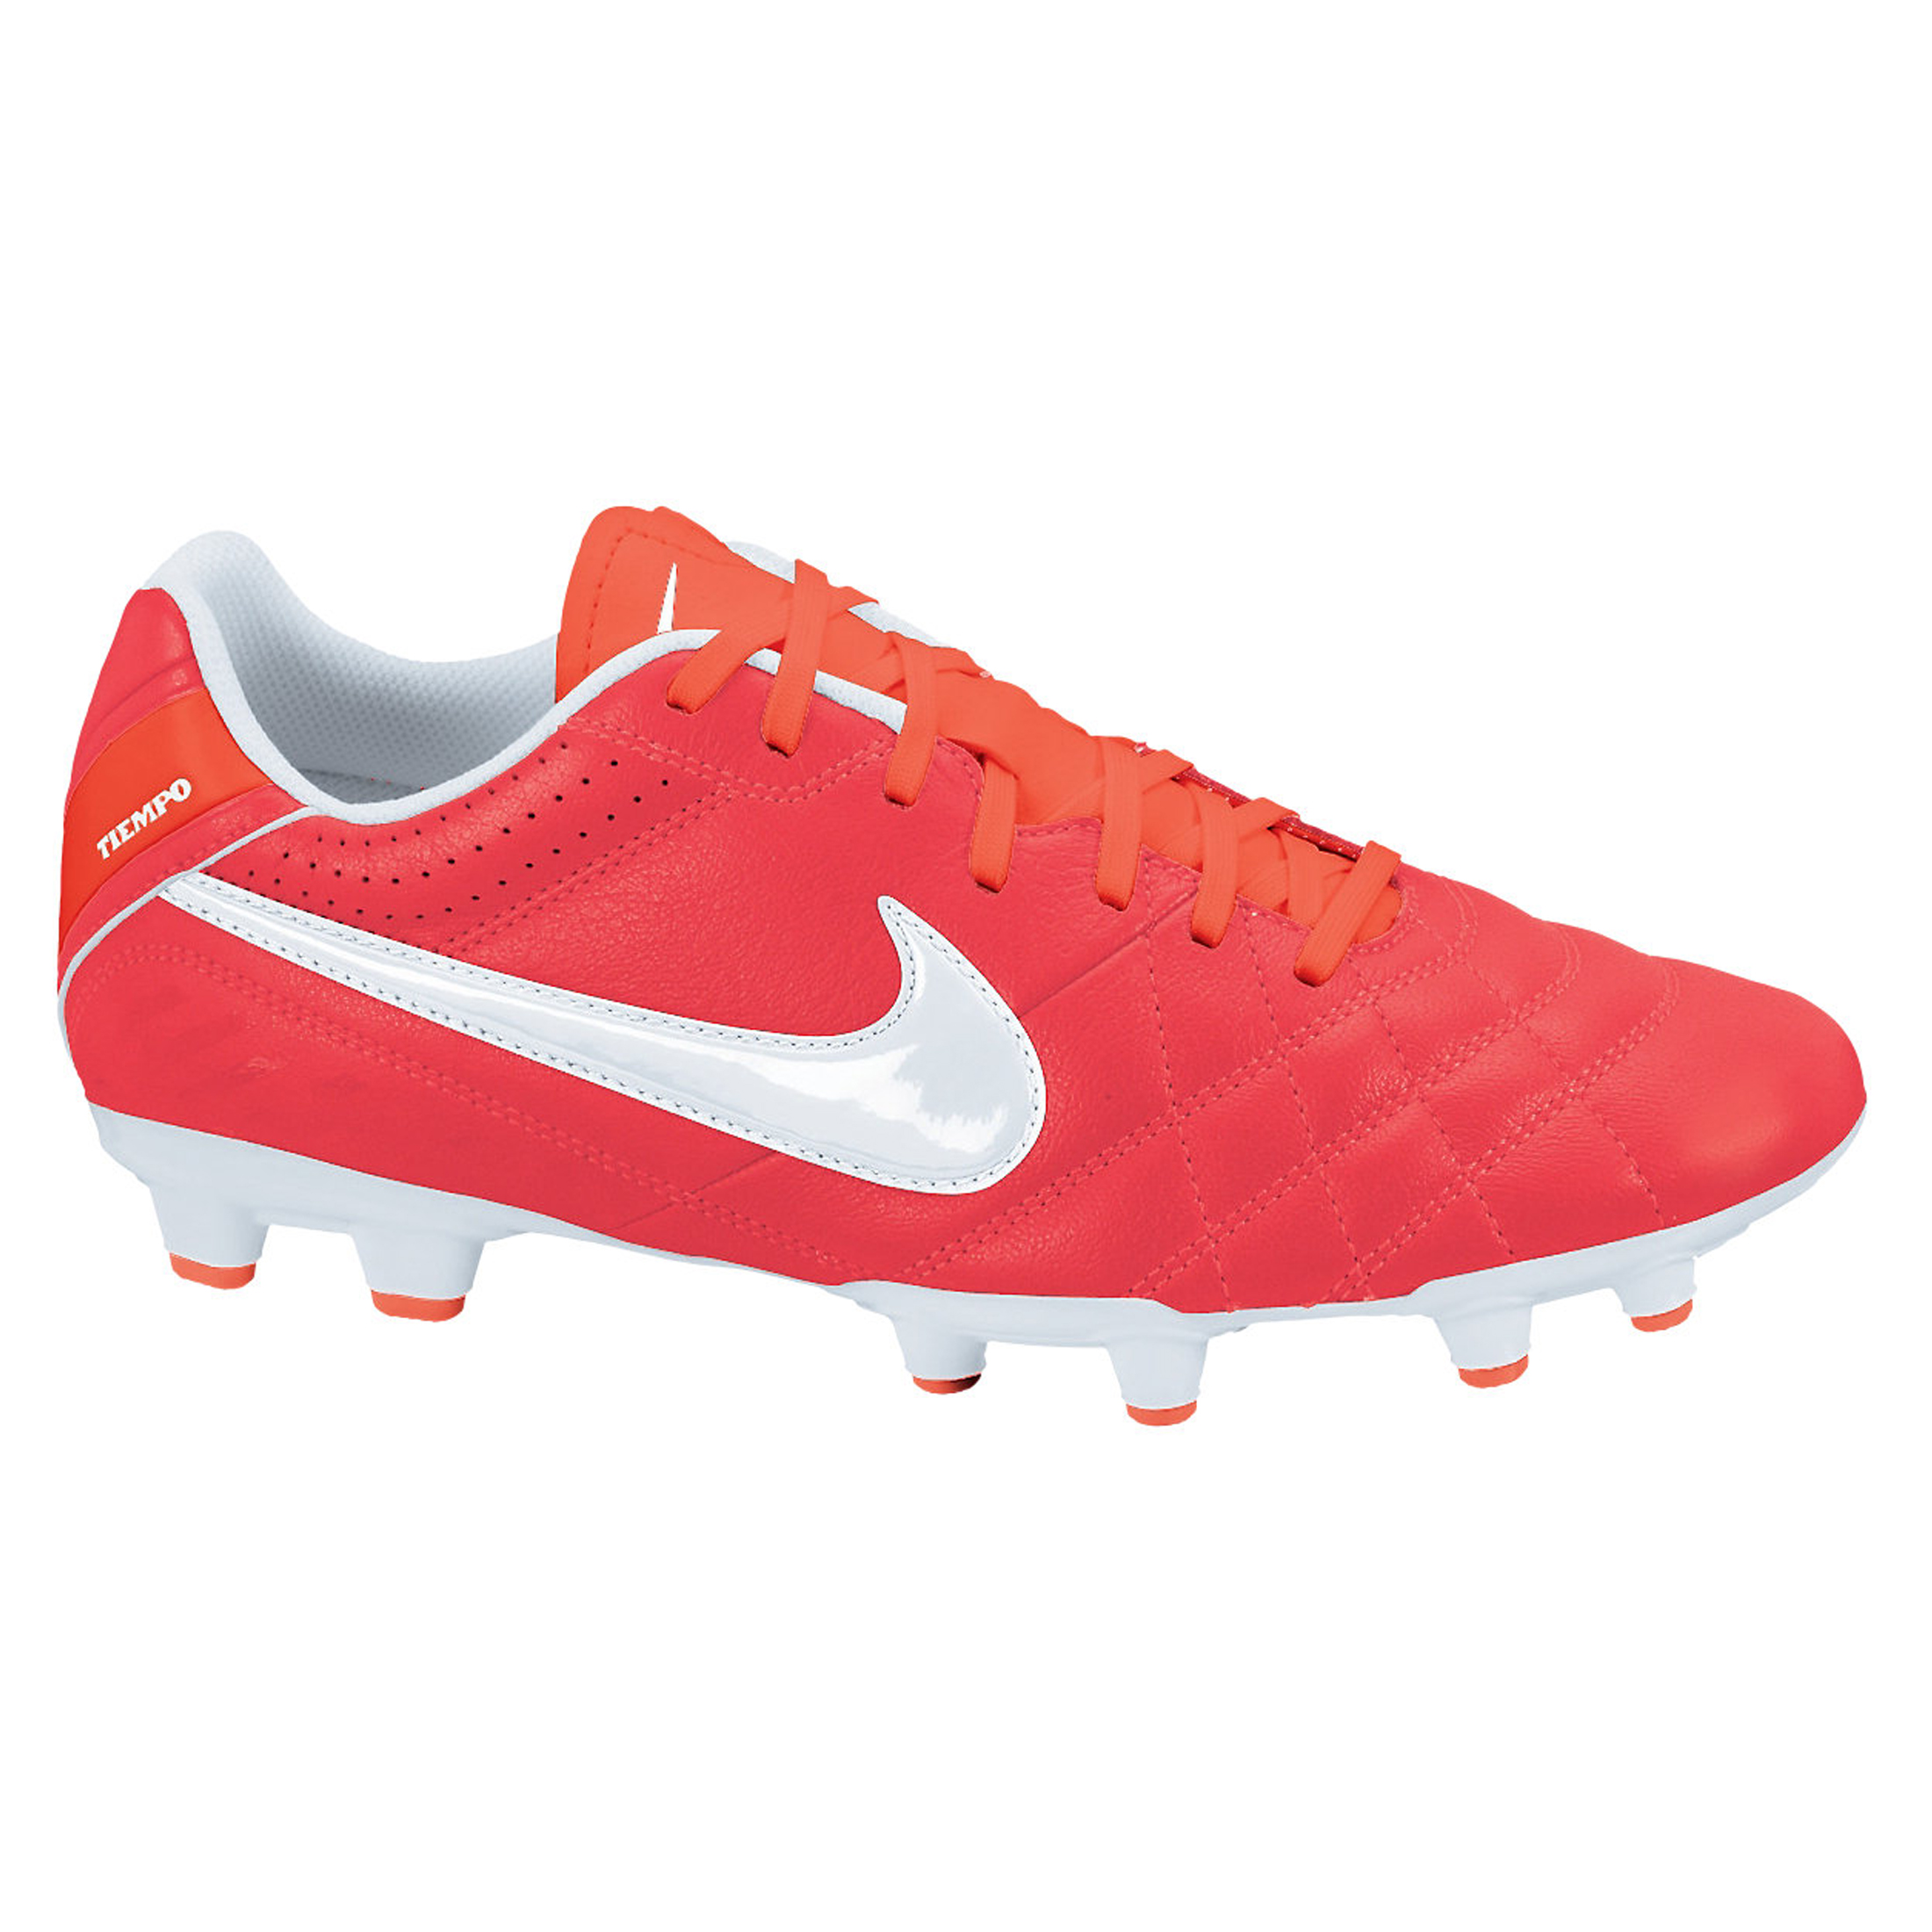 Nike Tiempo Natural IV LTR Firm Ground Football Boots - Sunburst/White/Total Crimson